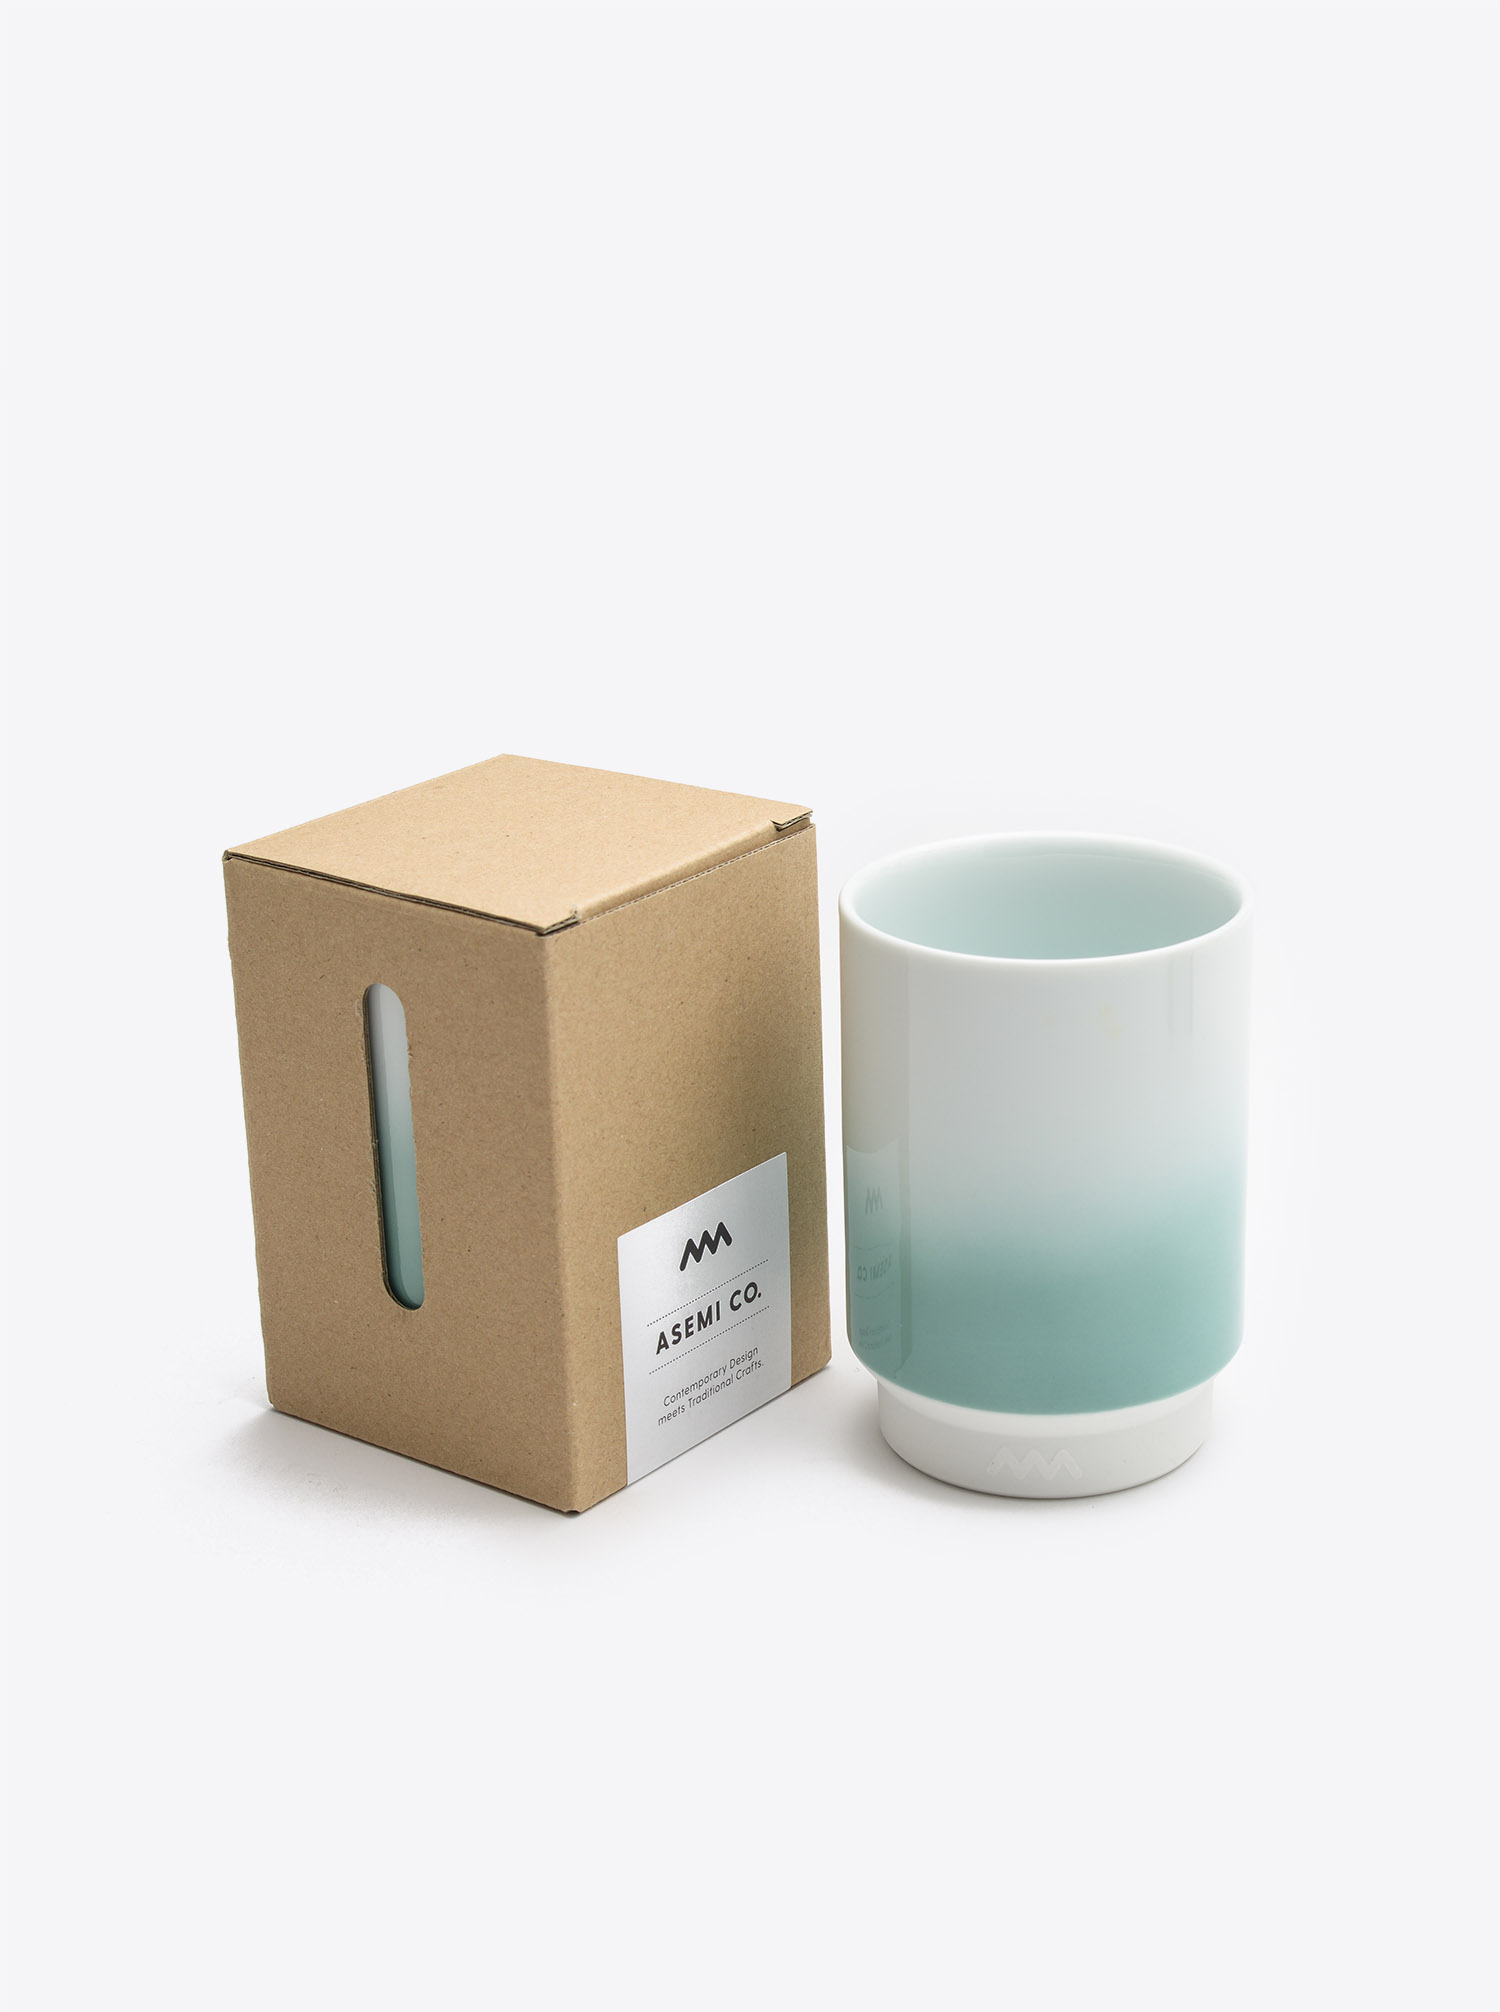 Teacup Hasami L mint